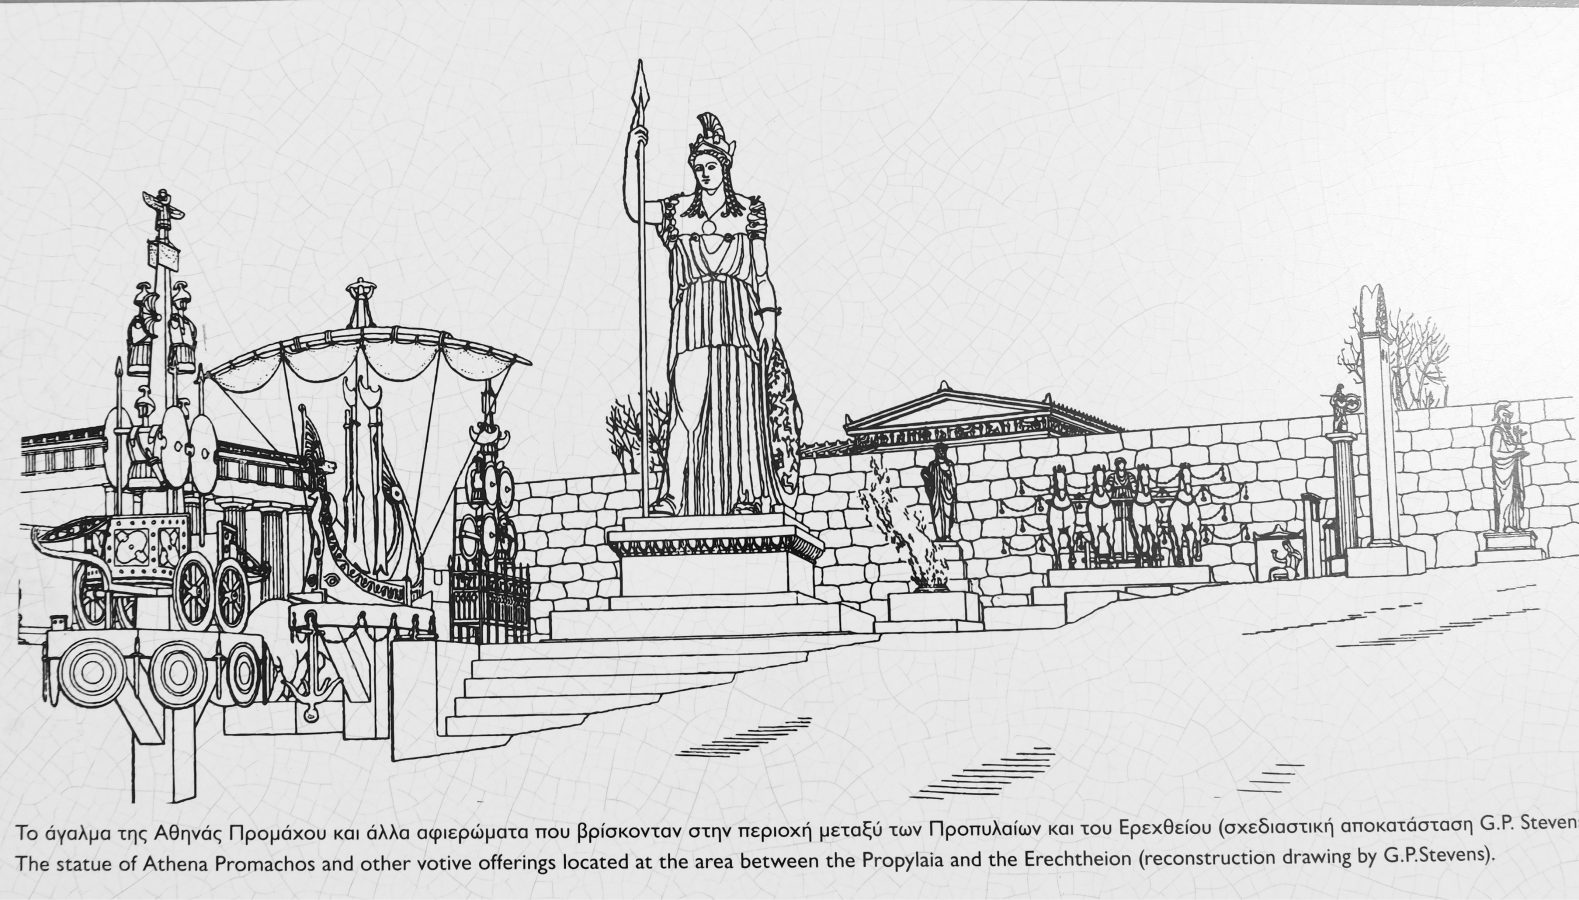 Statue of Athena as it stood at the Acropolis.